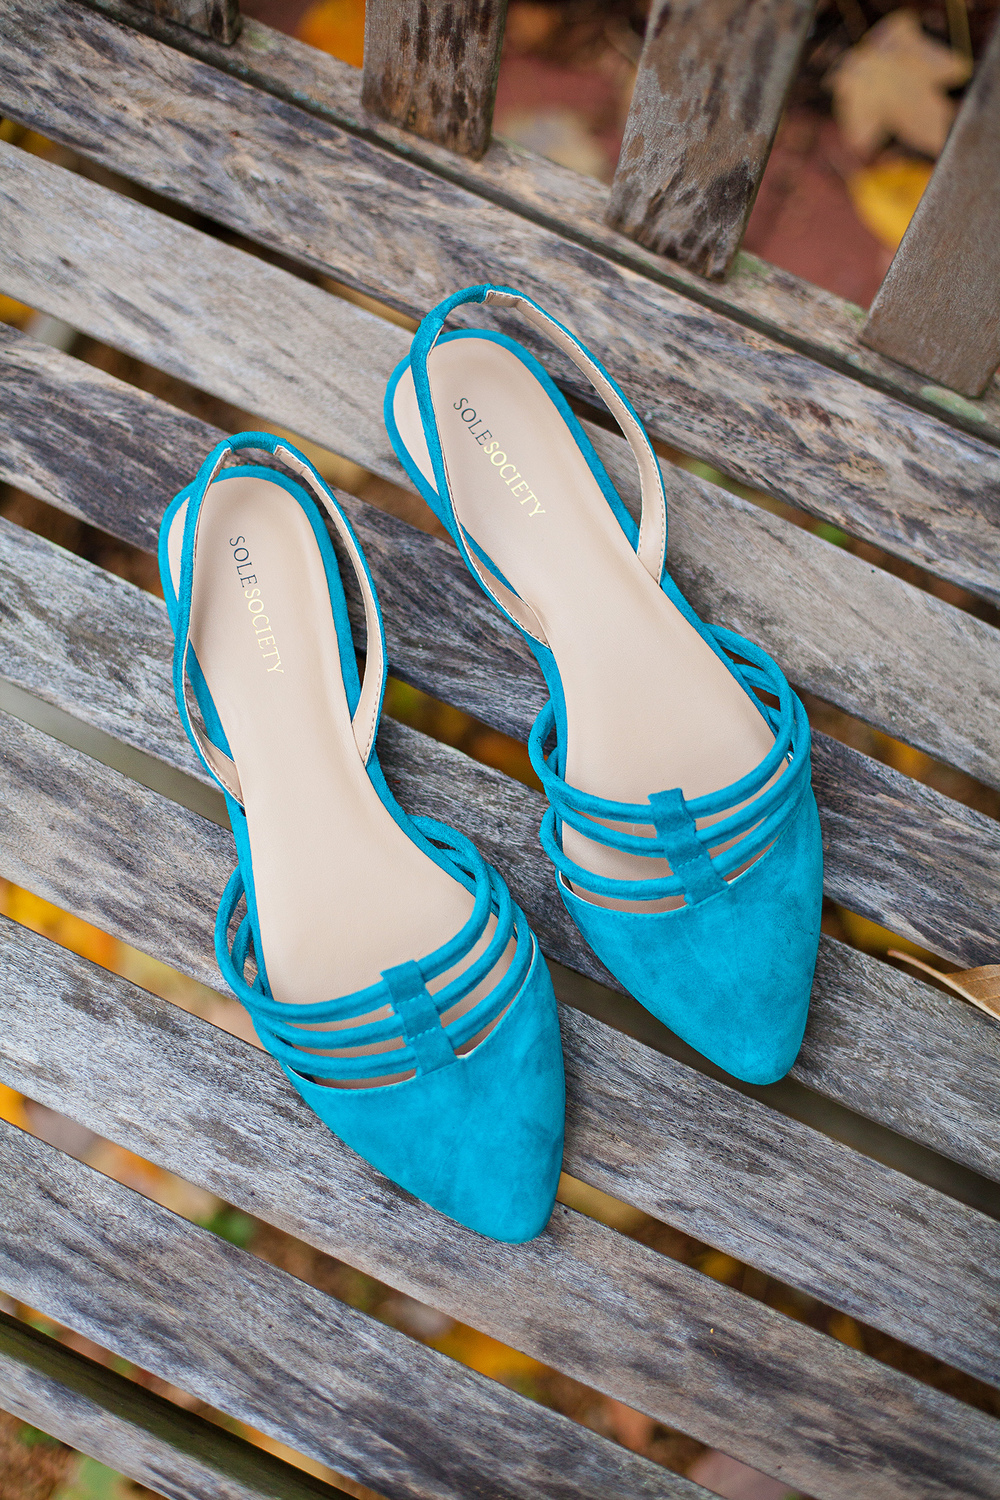 Teal Bridal Shoes by Sole Society